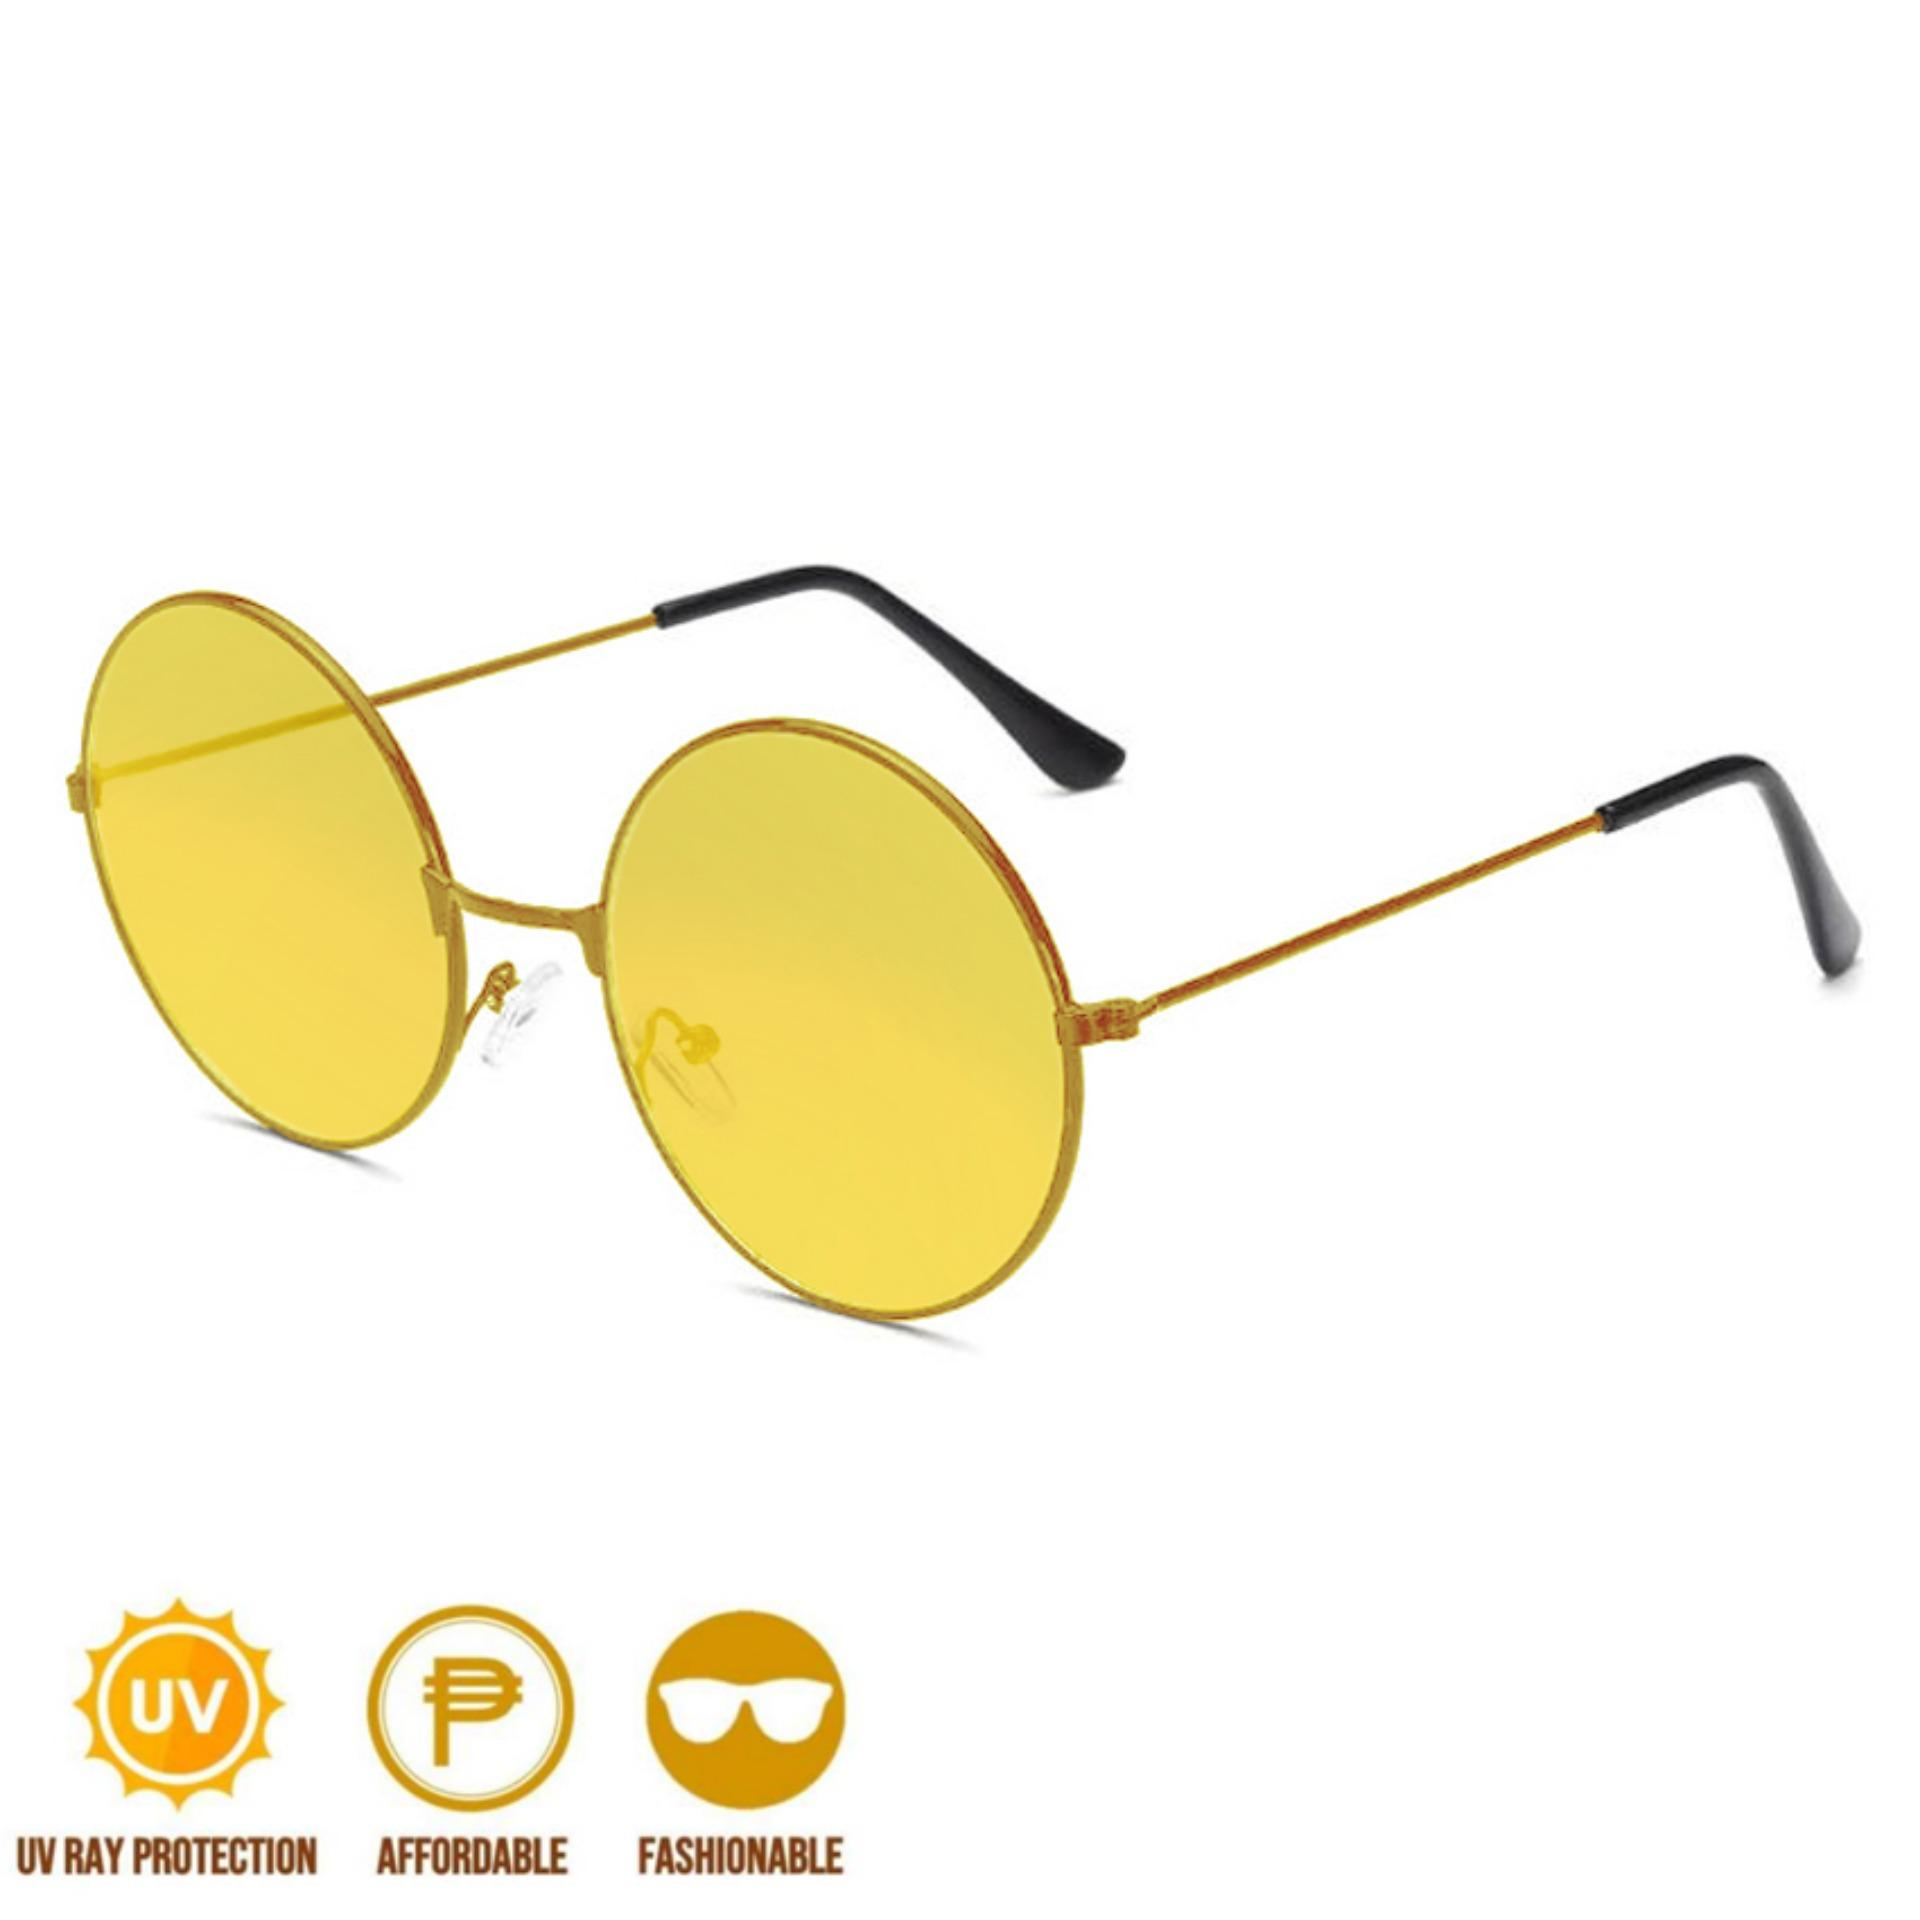 6344198217419 ANT Retro Round Style Harry Potter Colored Vintage Glasses Tint Sunglasses  Sunnies Shades Metal Frame Yellow